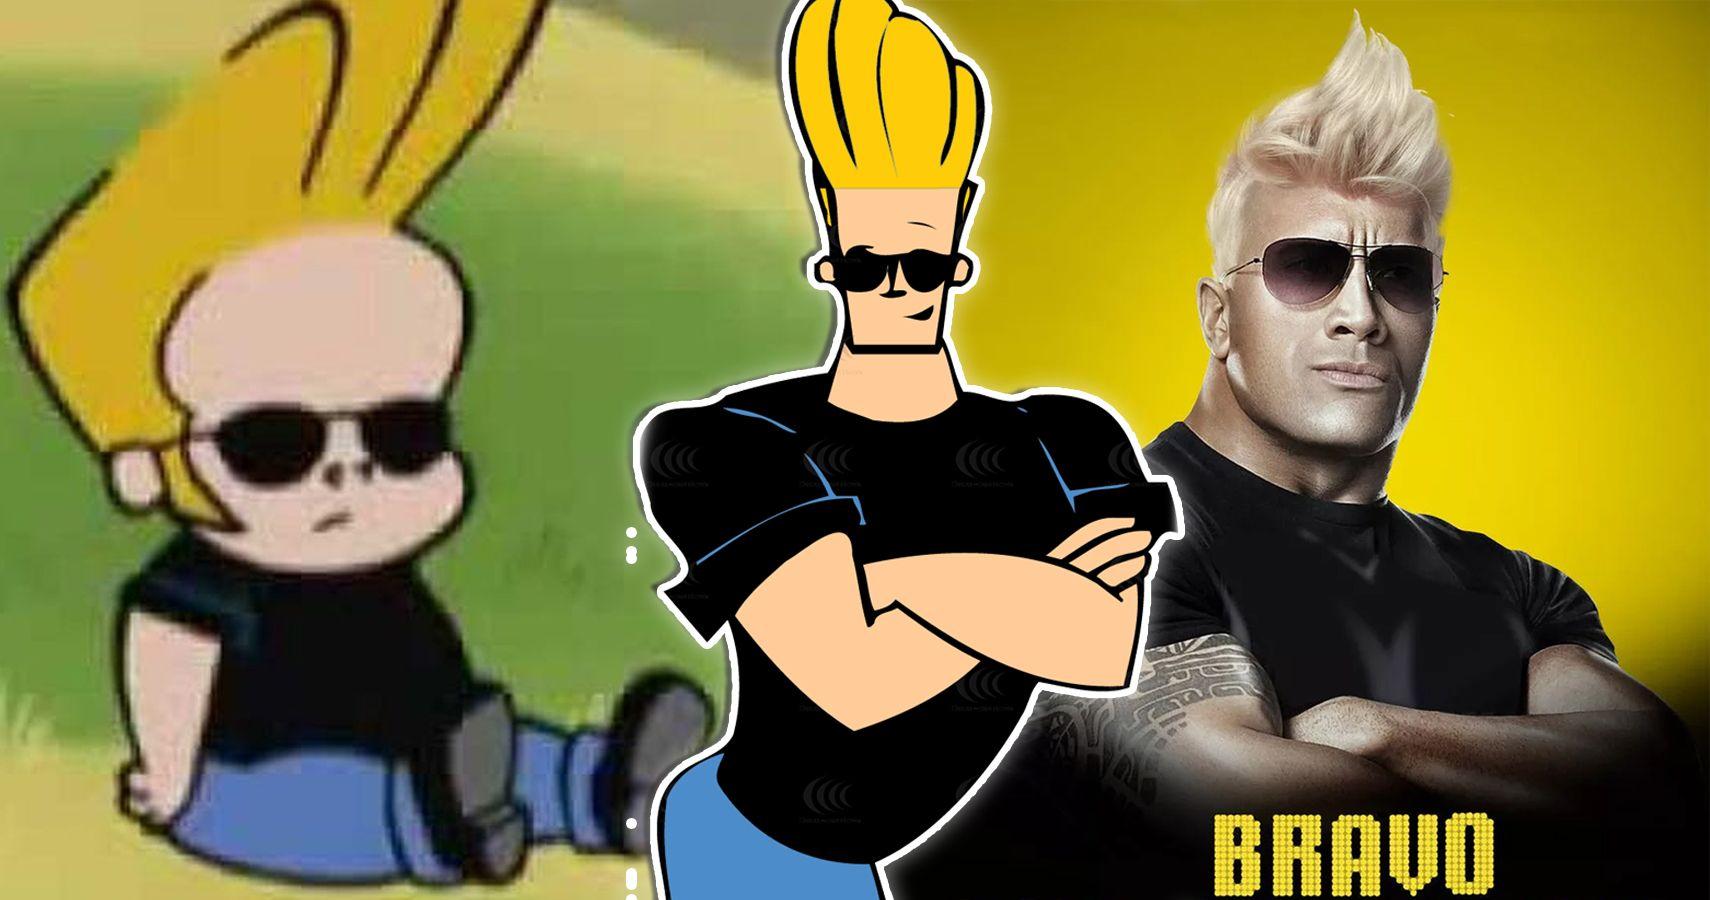 22 Johnny Bravo Facts That Make Us Want To Comb Our Hair